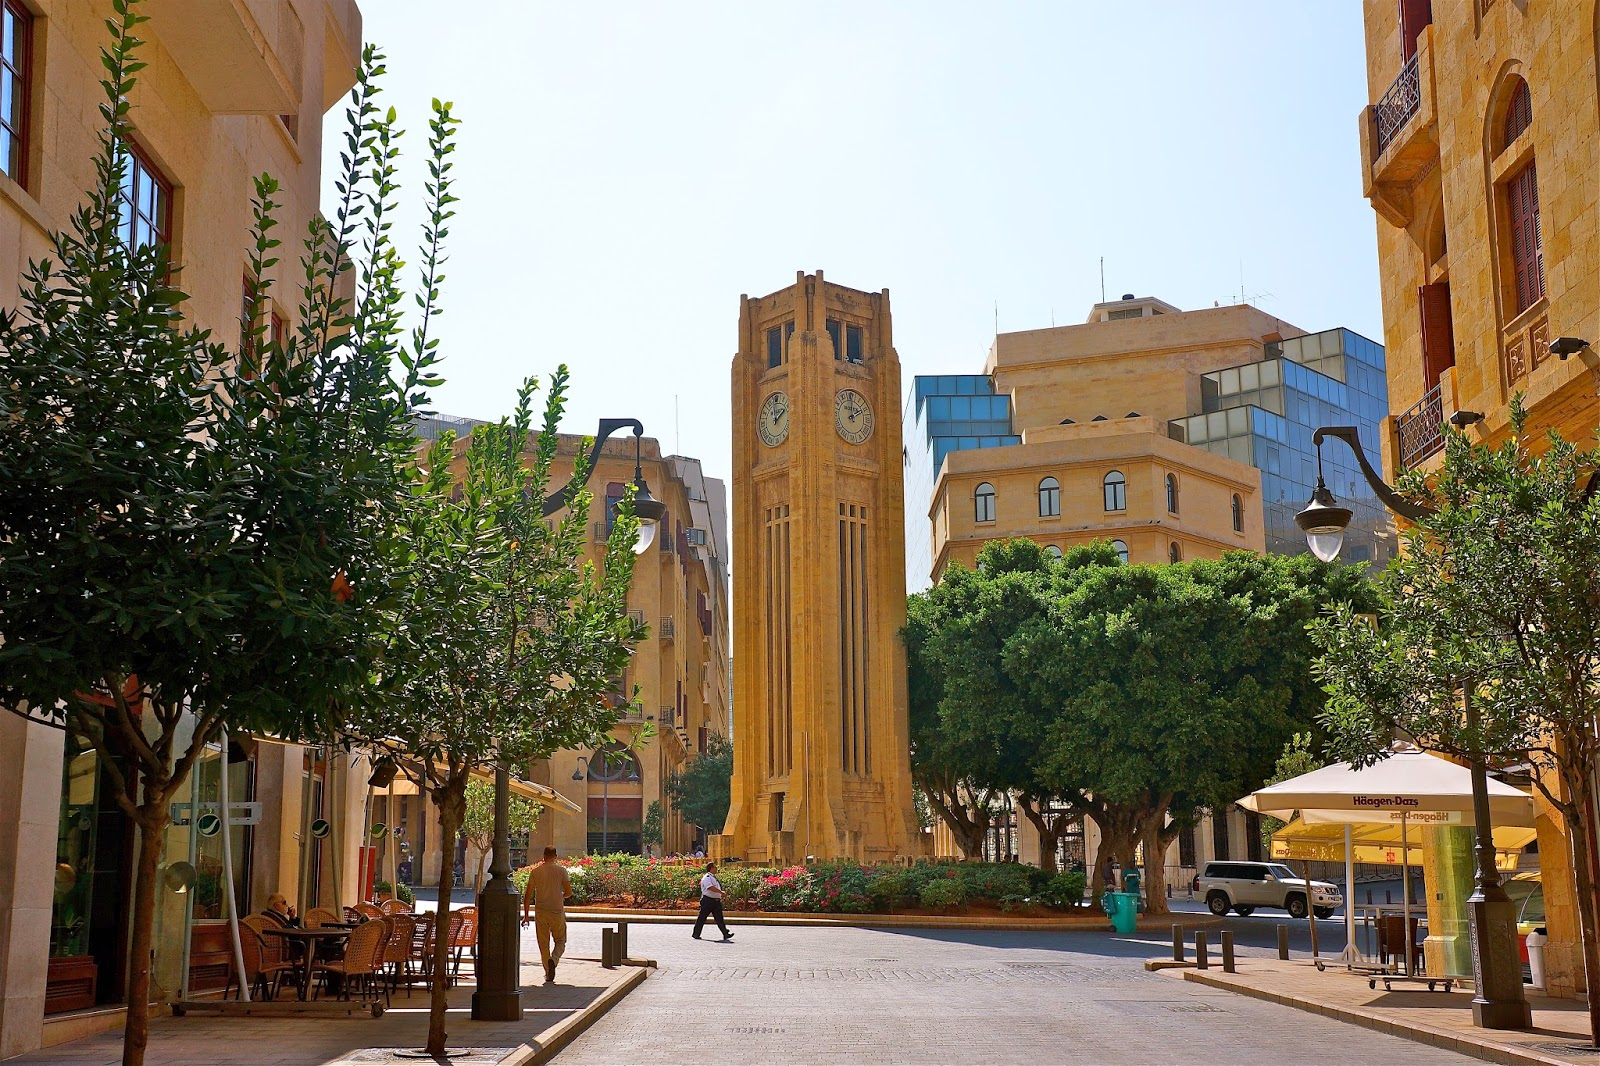 Picture of Place de l'Etoile and the clock tower in Beirut, Lebanon.